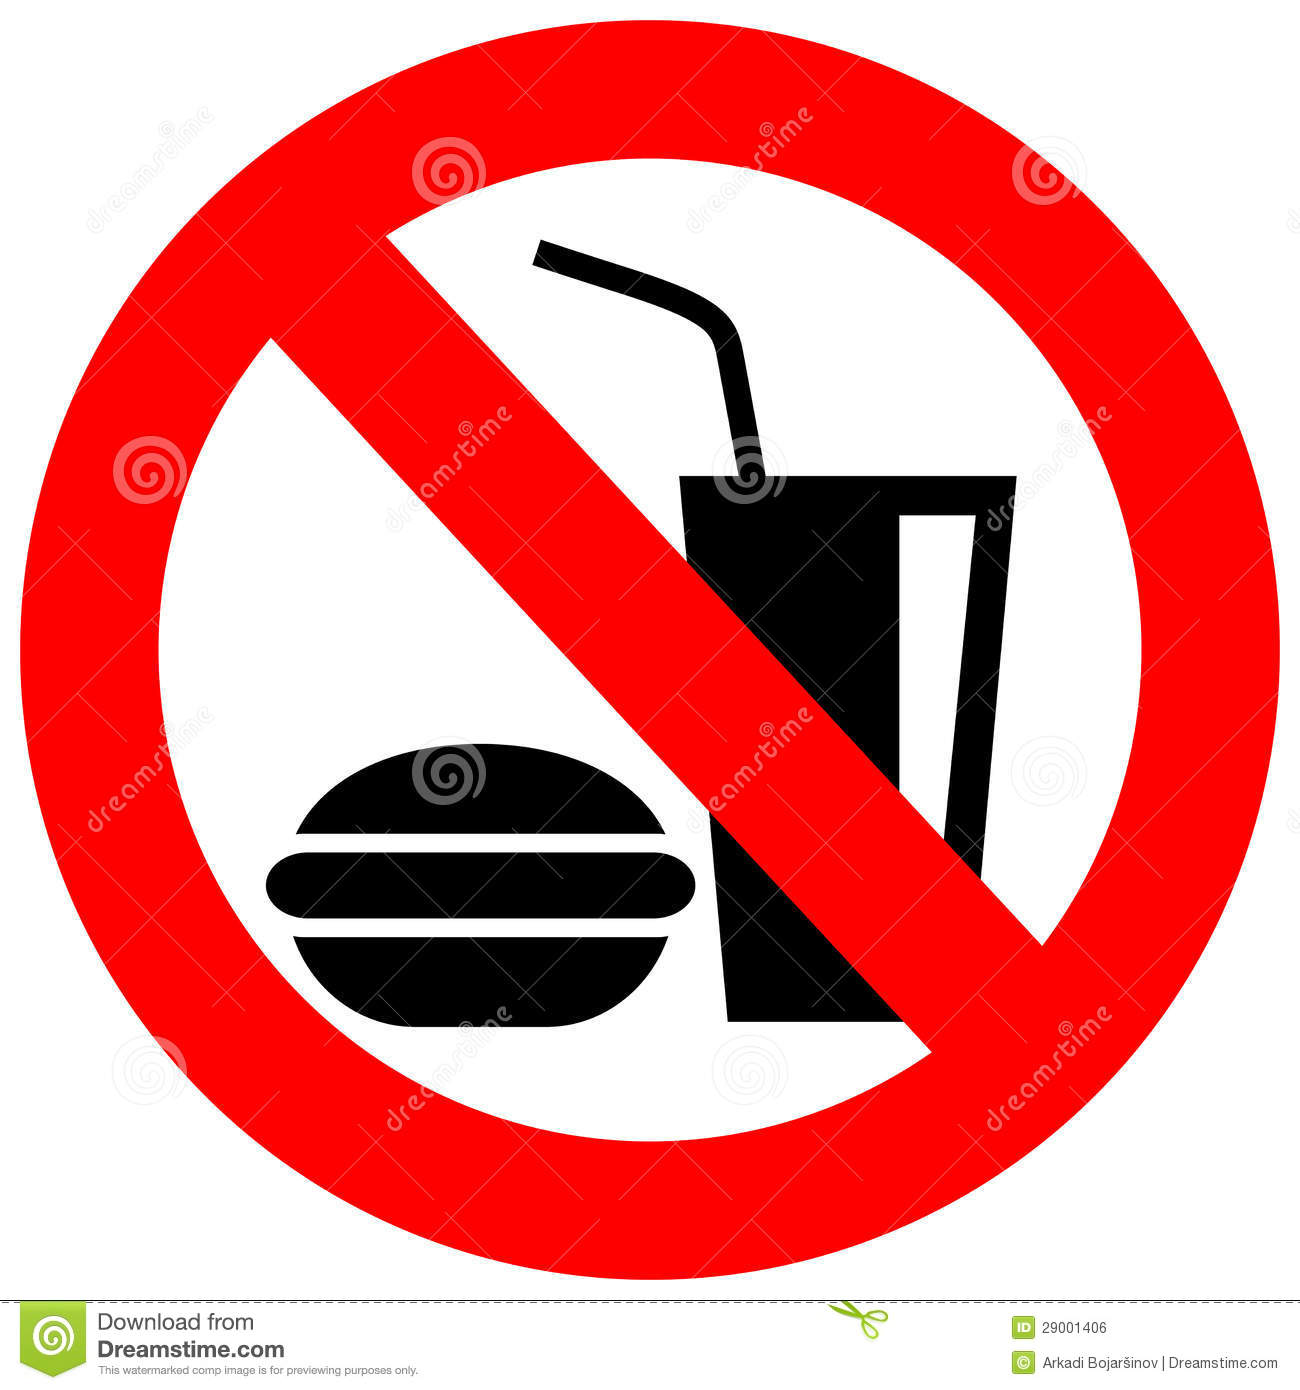 Что такое eating prohibitted 18 фотография